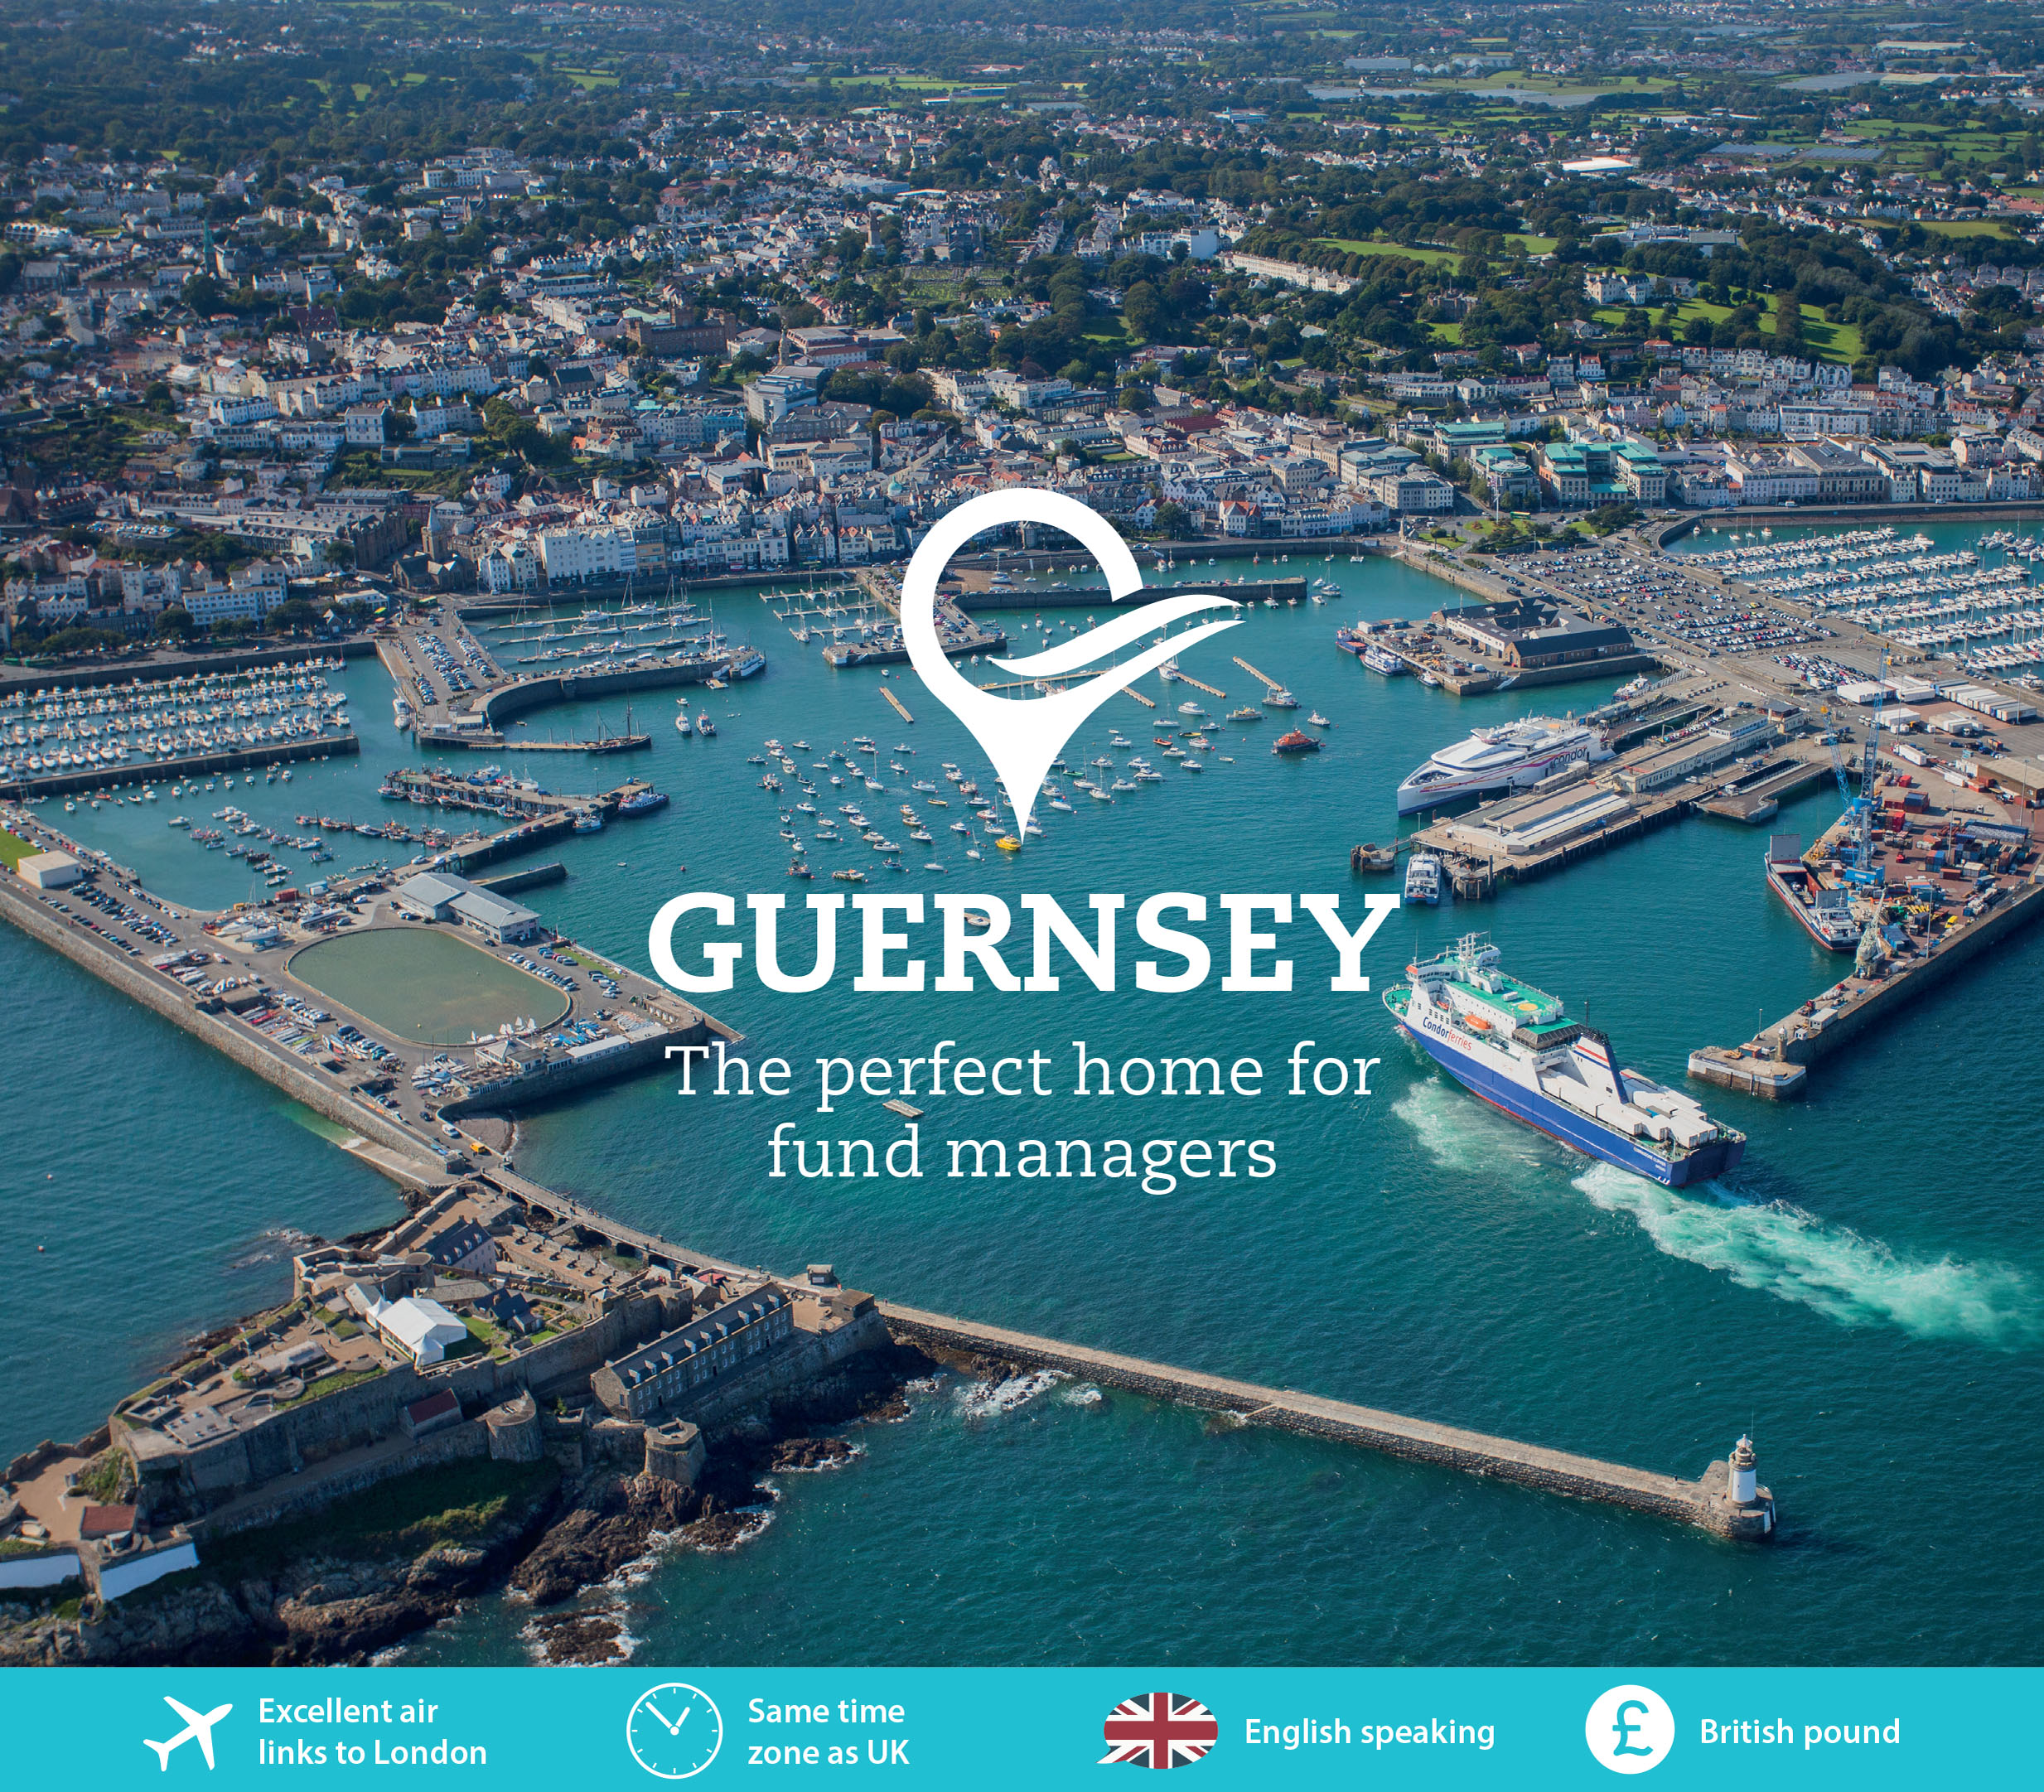 Why Guernsey for Funds Managers - Guernsey Fund Management